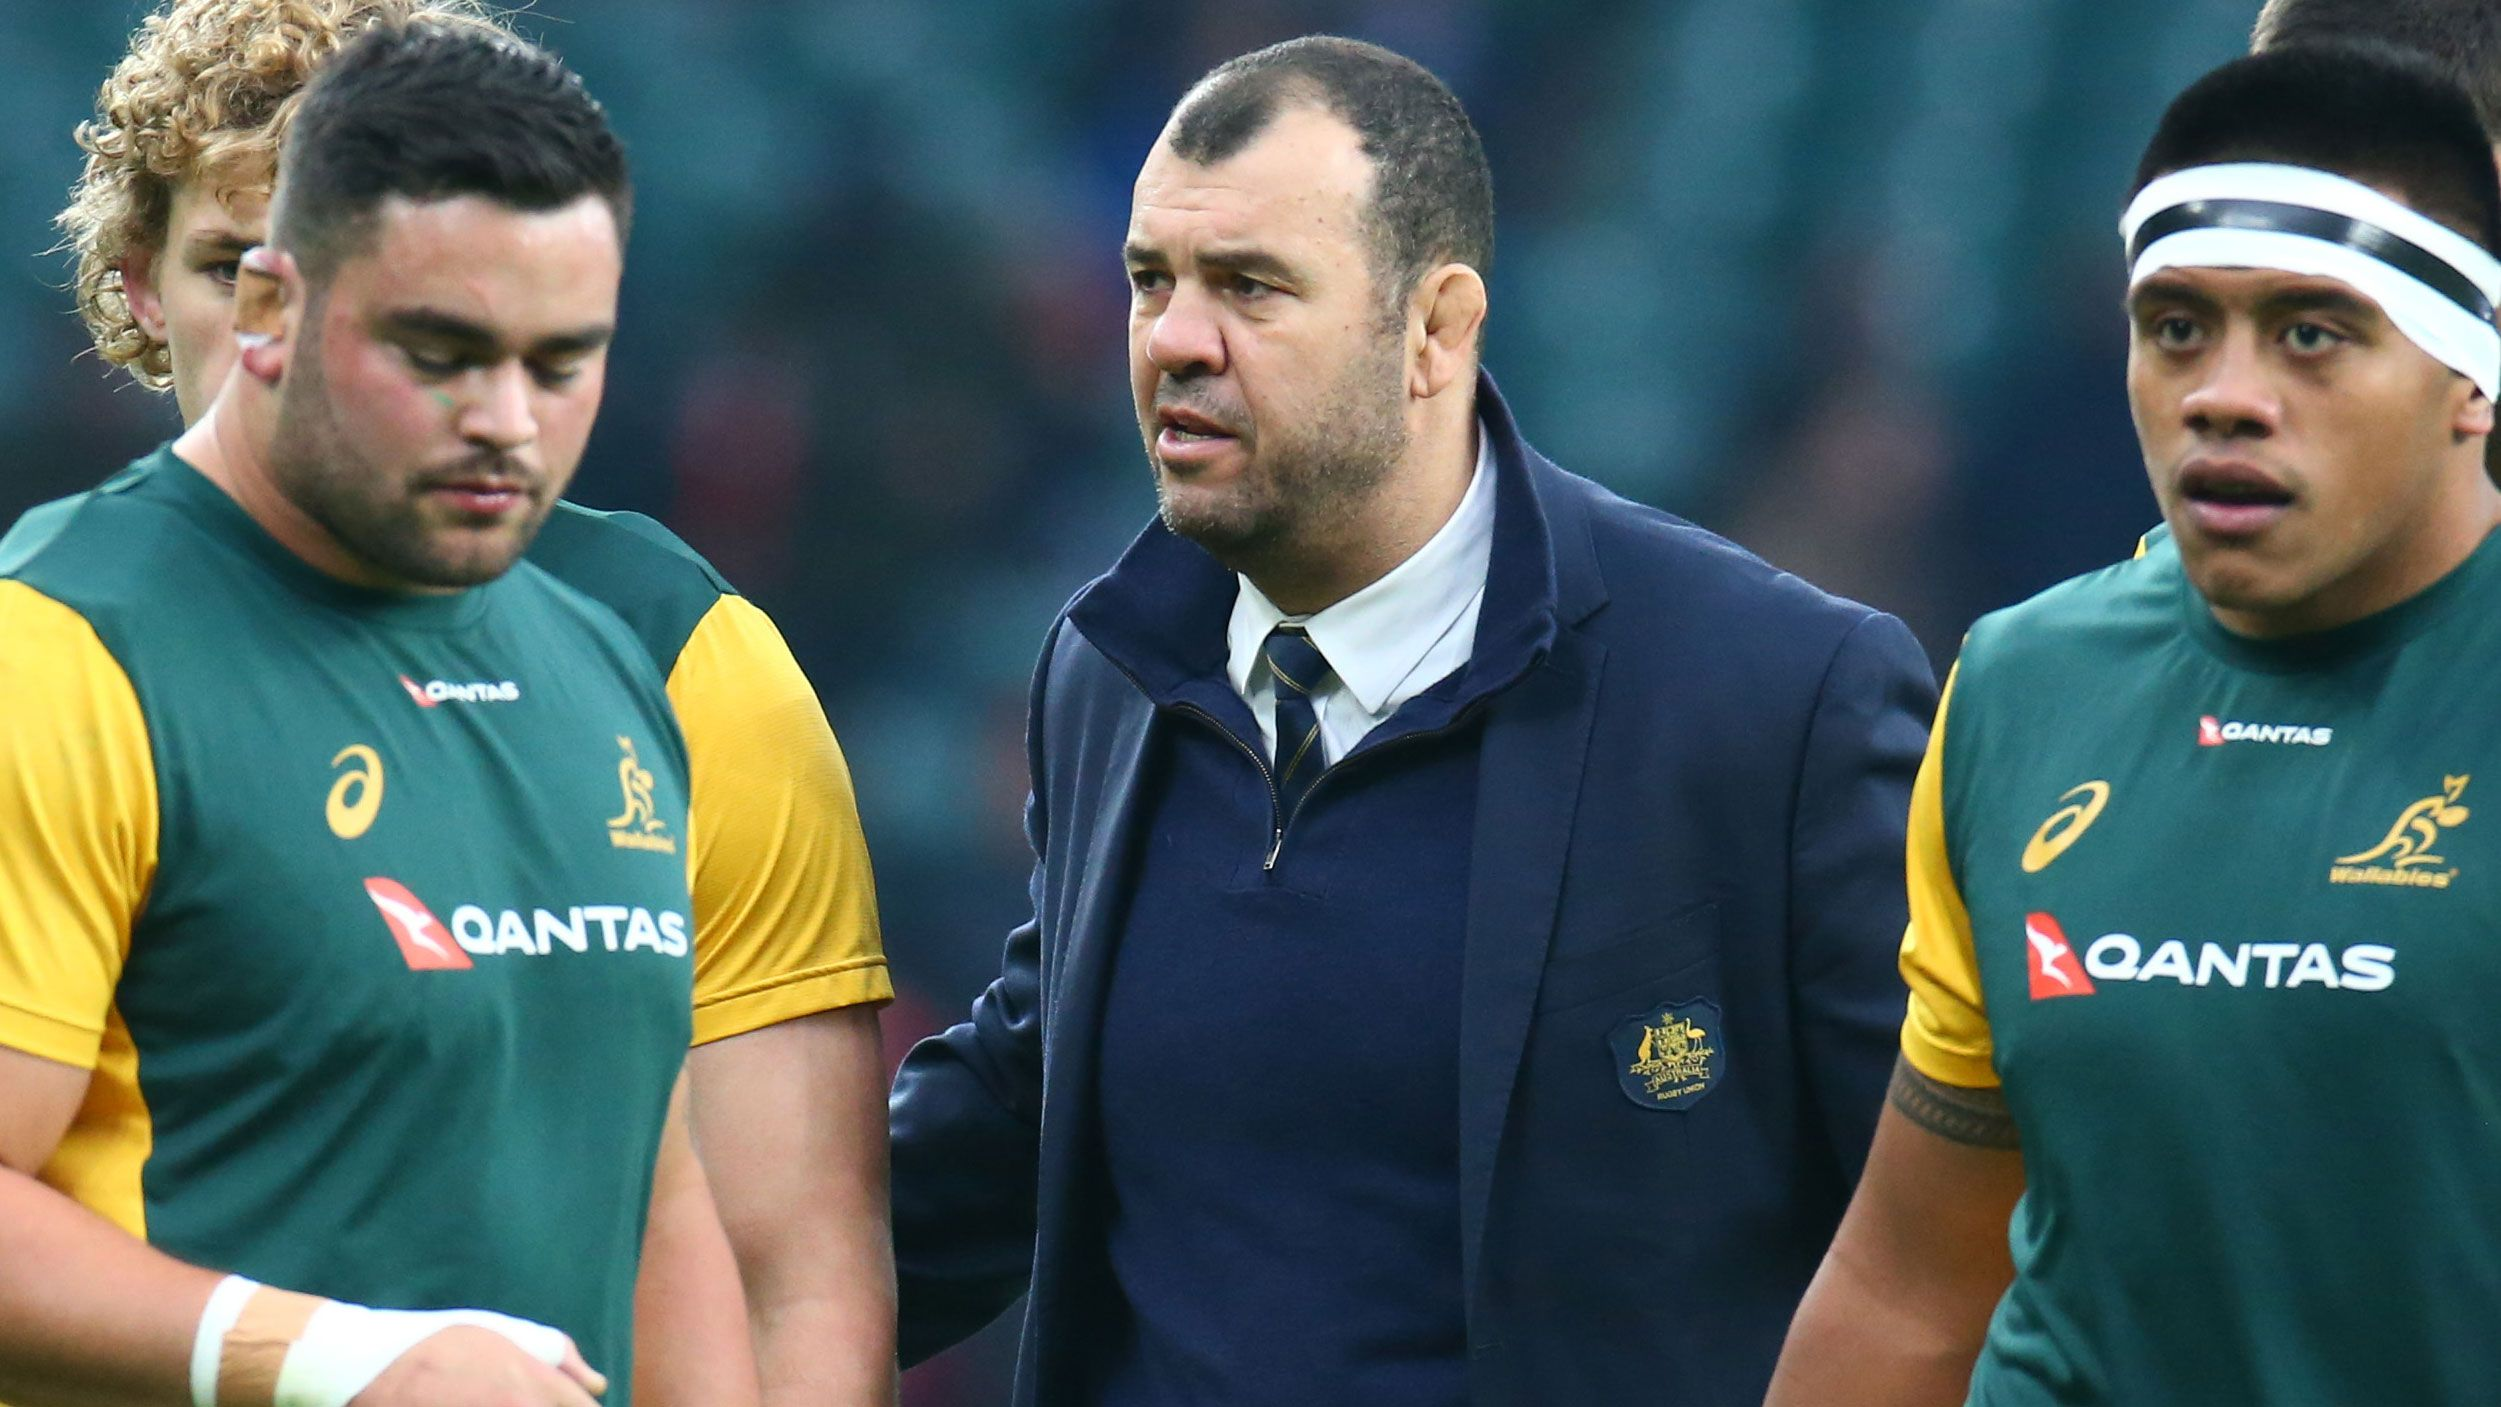 Wallabies coach Michael Cheika survives shake-up as Scott Johnson appointed